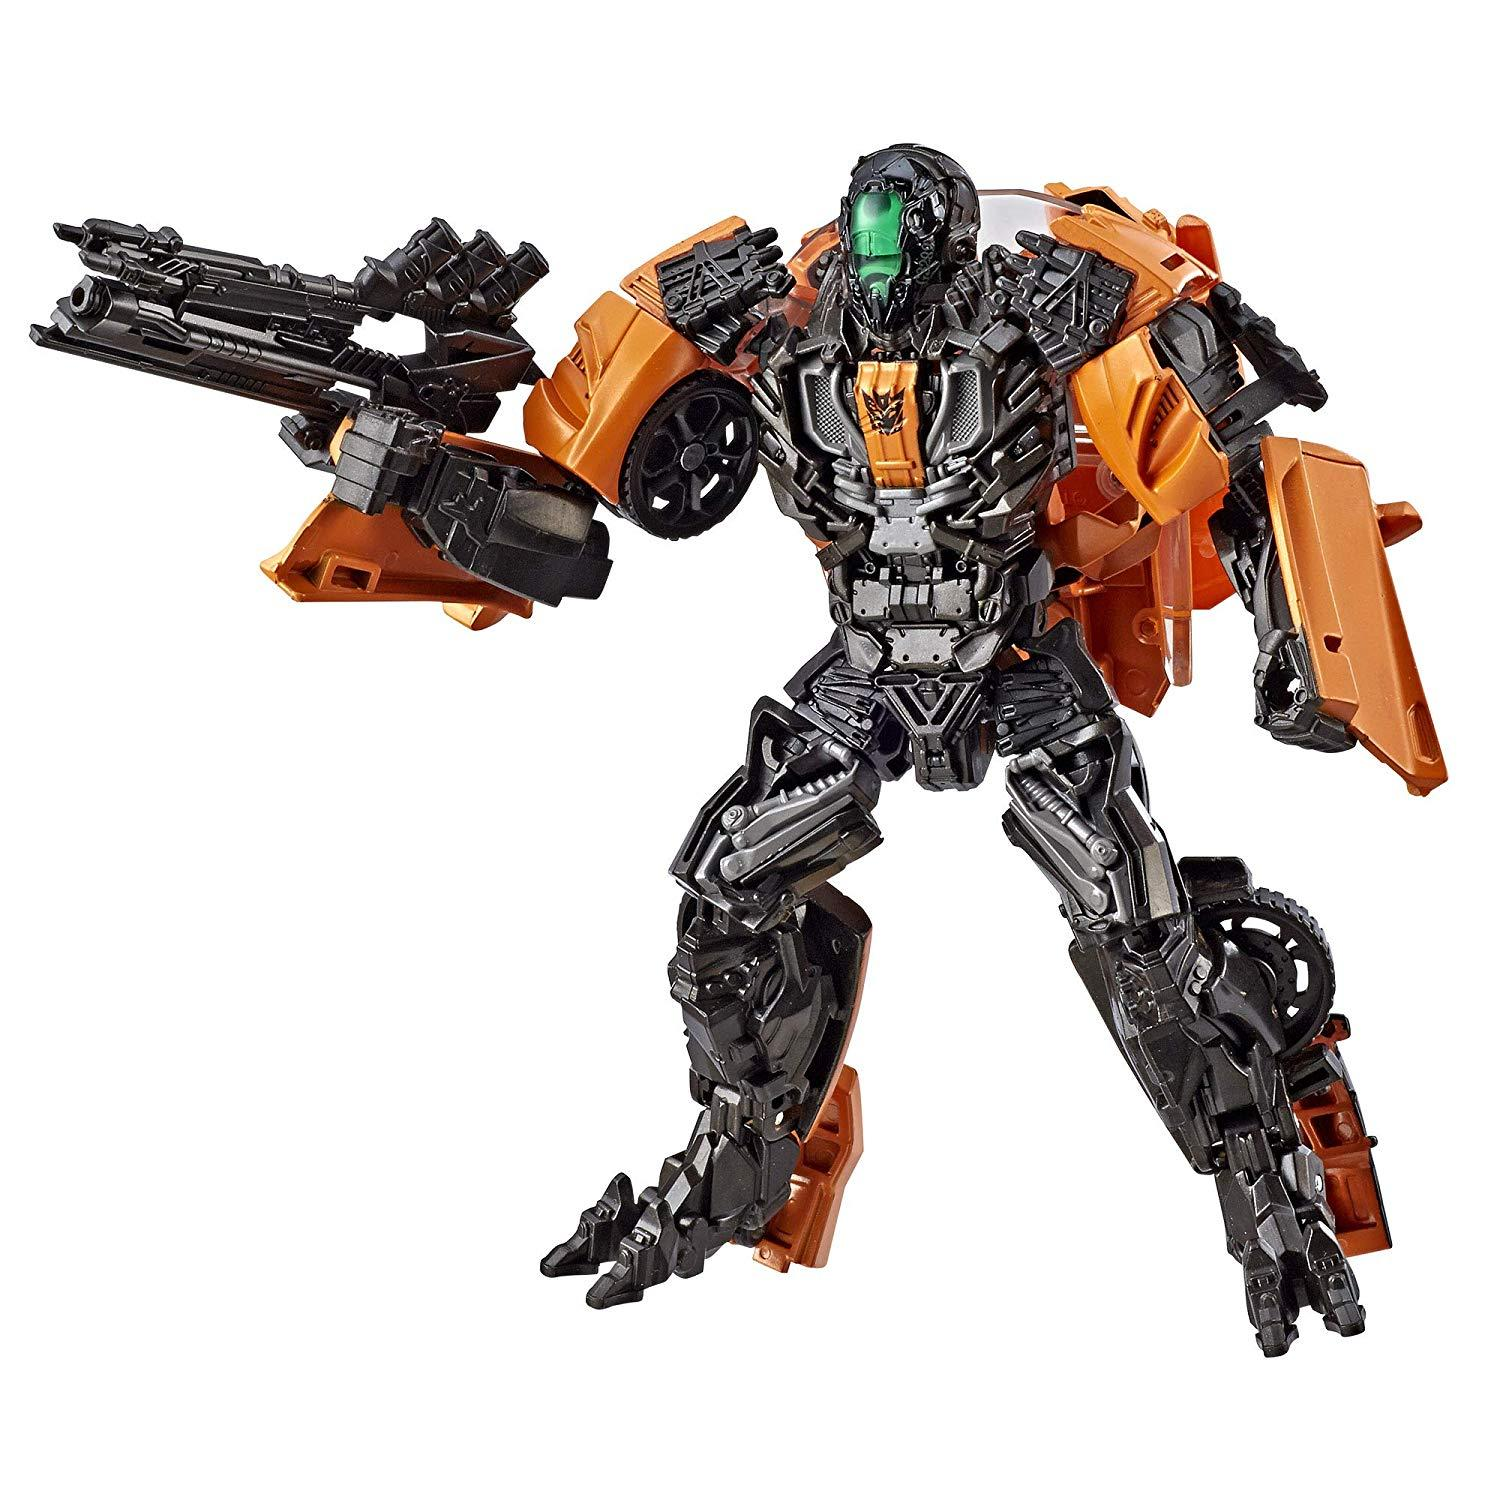 Transformers For Sale >> Transformers E0976 Studio Series 17 Deluxe Class Age Of Extinction Shadow Raider Multi Colored